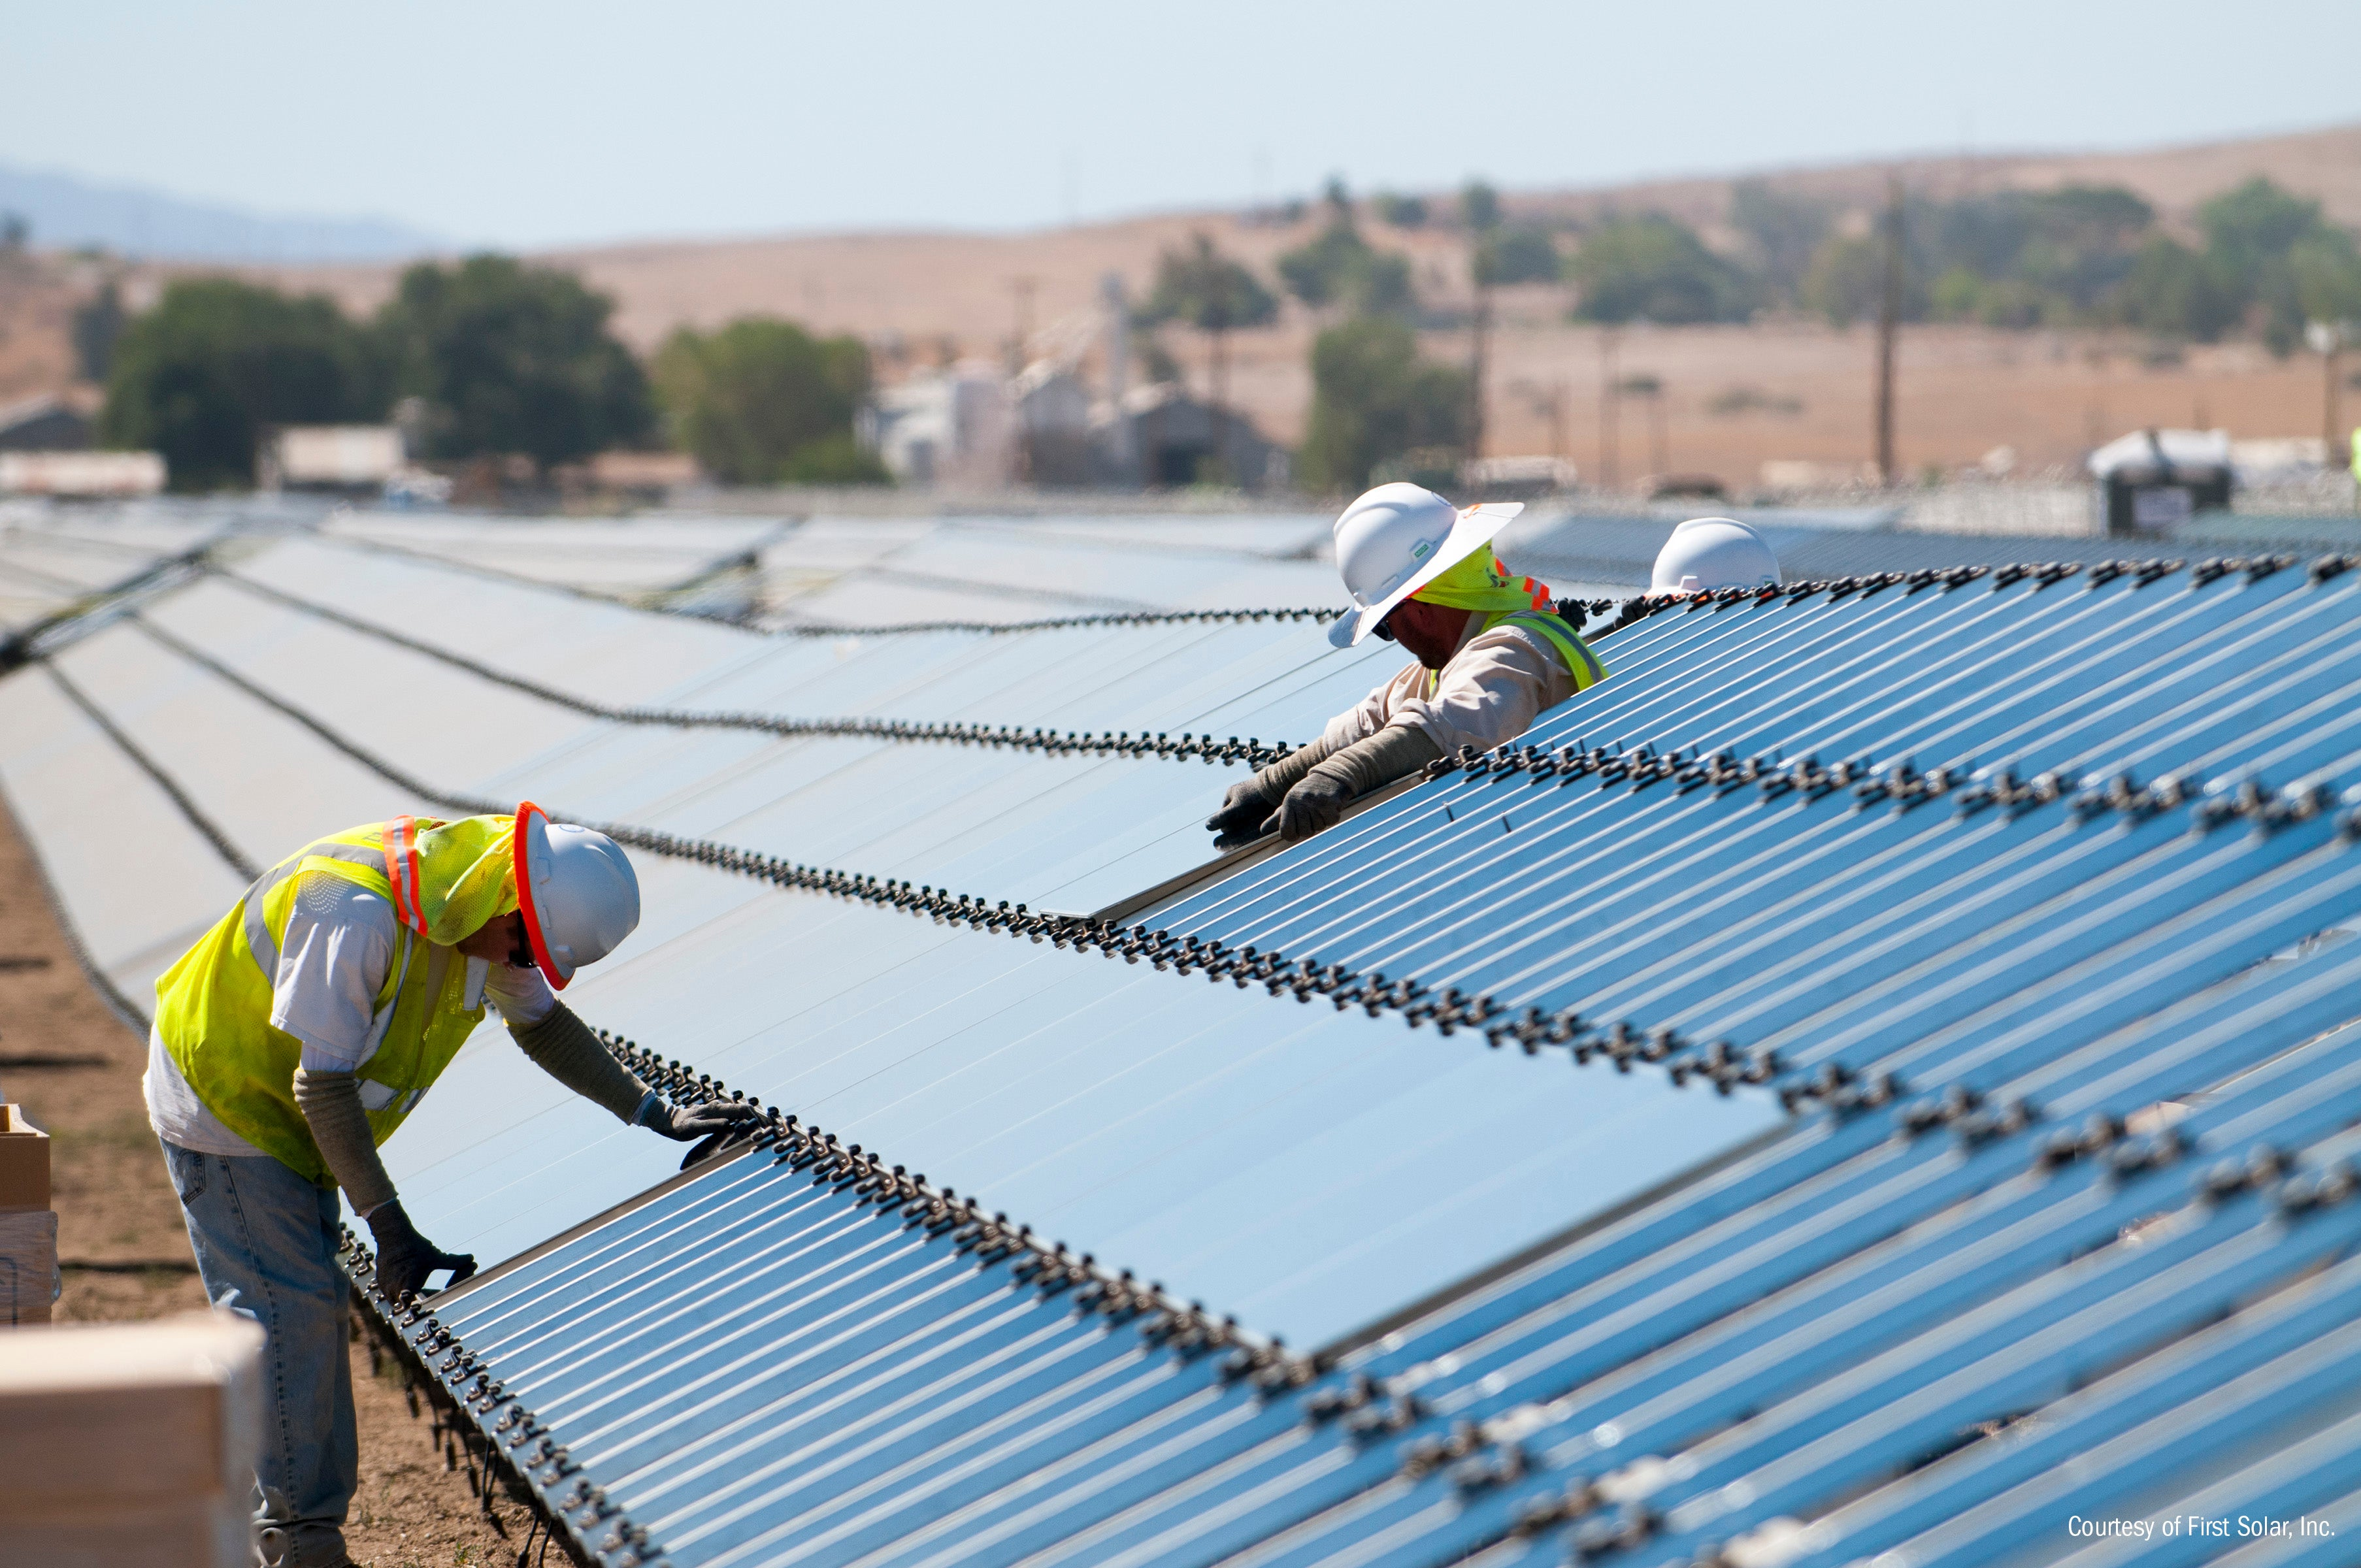 Two workers working on a First Solar power plant that's under construction.